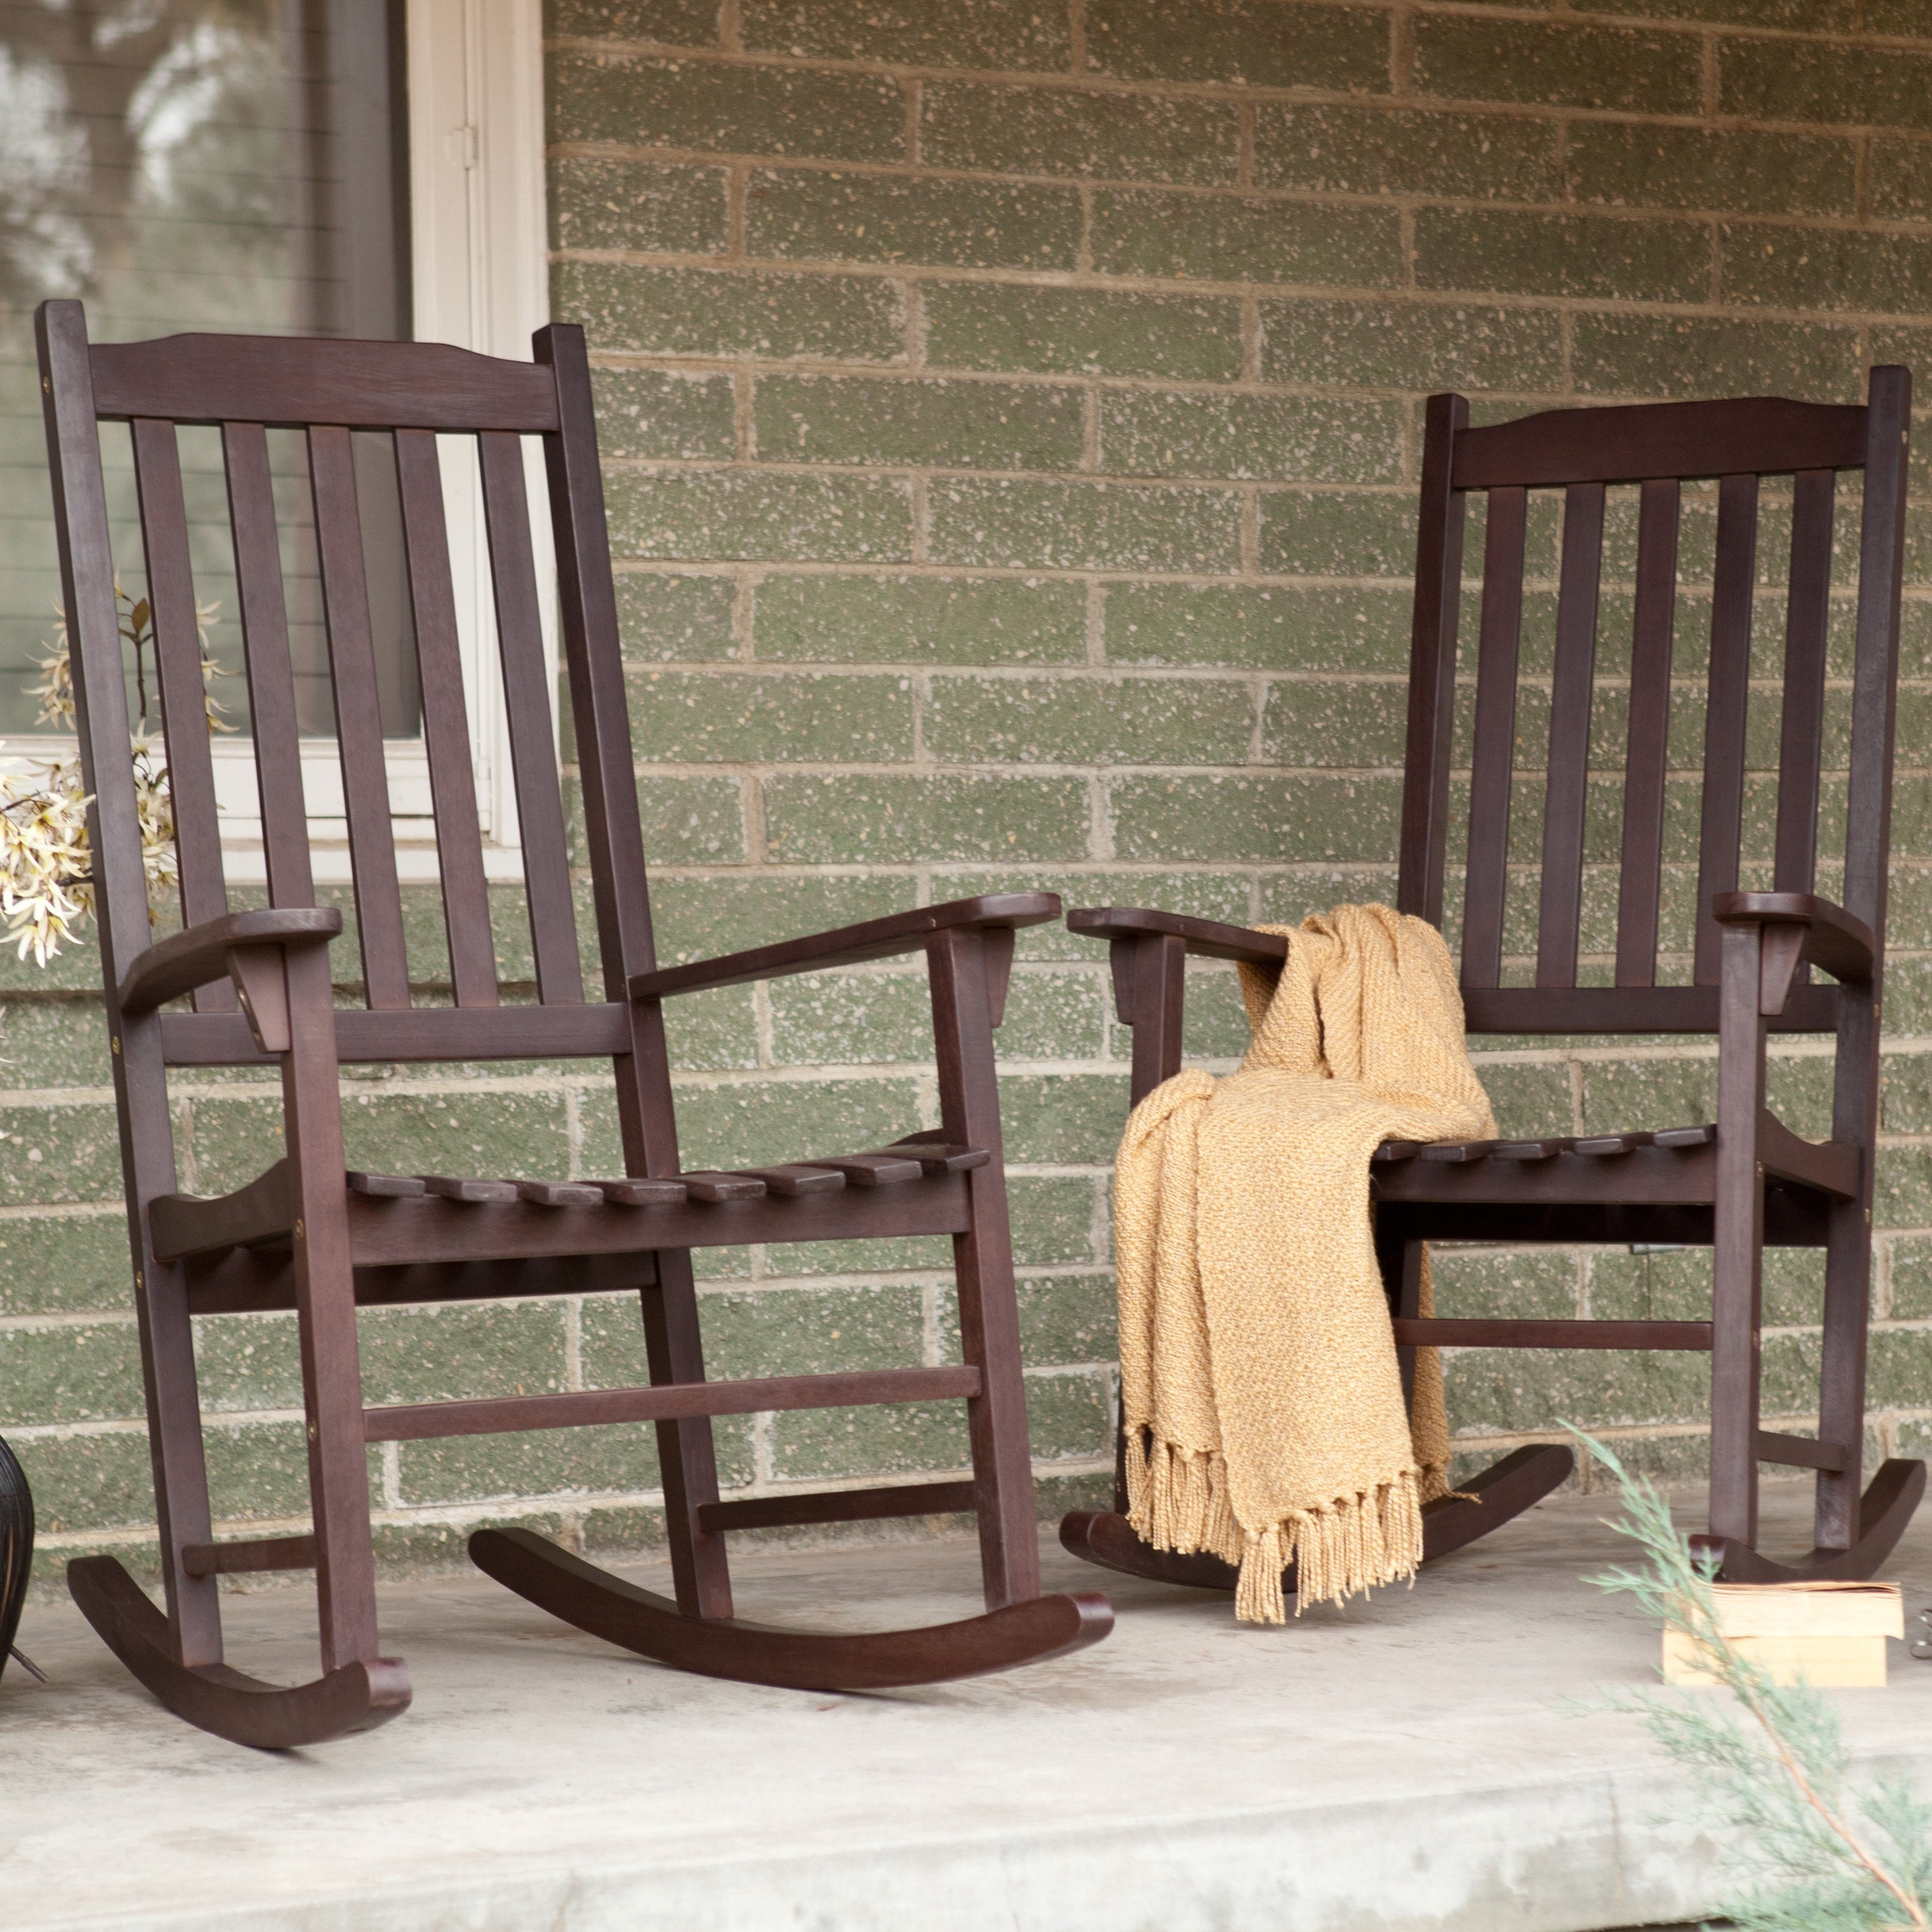 Preferred Unique Outdoor Rocking Chairs Inside Coral Coast Indoor/outdoor Mission Slat Rocking Chairs – Dark Brown (View 9 of 20)